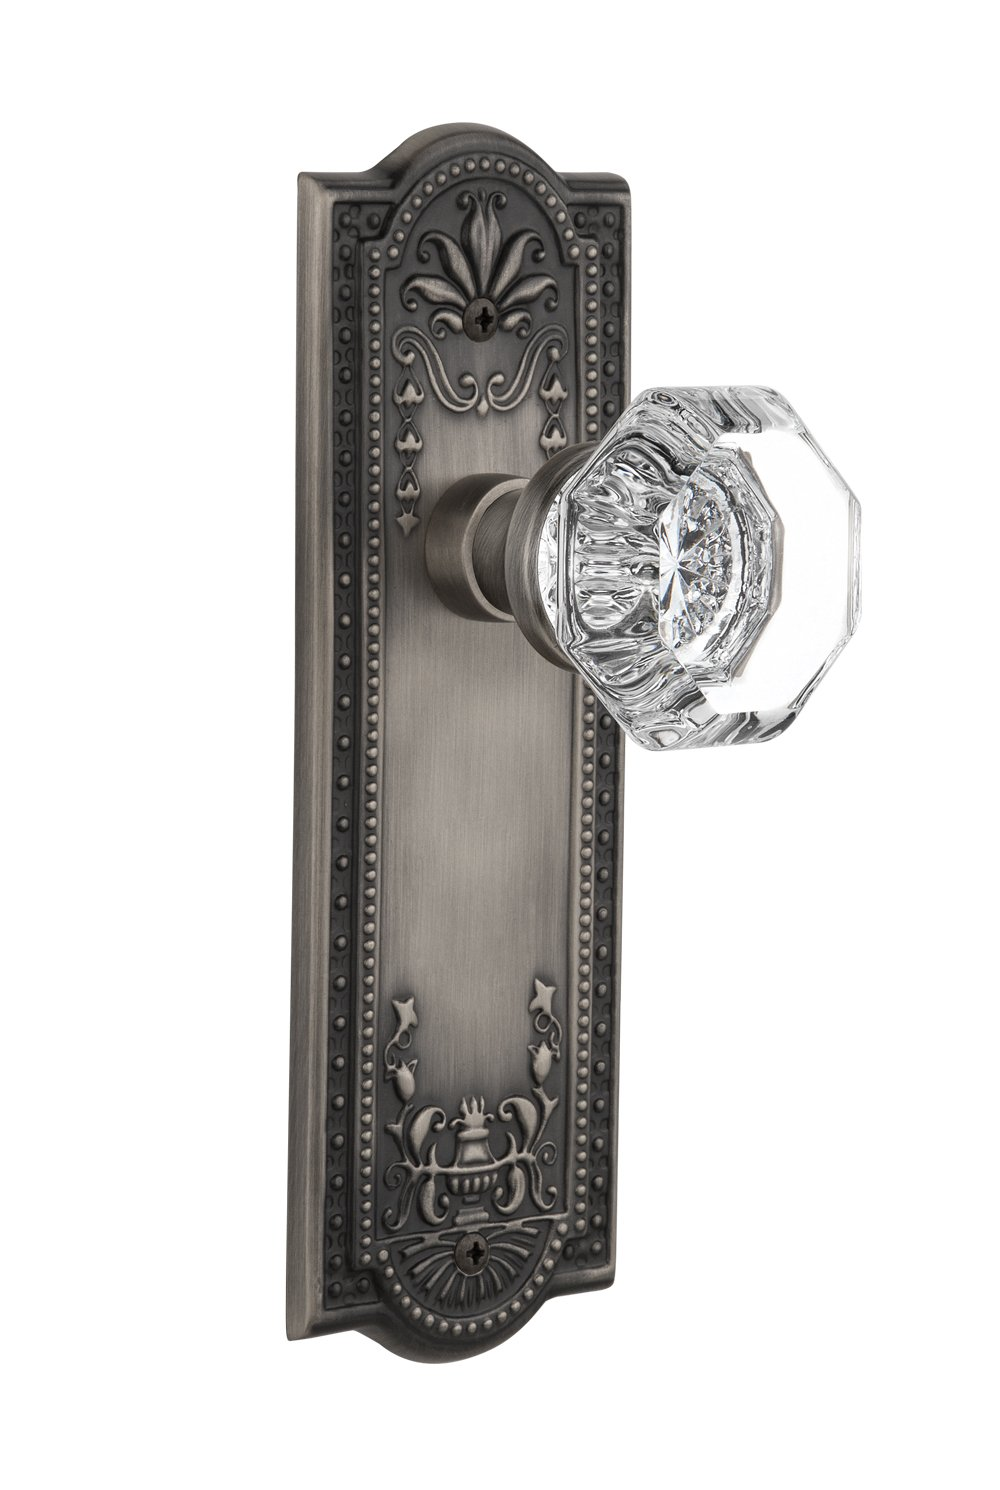 2.375 Nostalgic Warehouse Meadows Plate with Waldorf Crystal Knob Antique Pewter Privacy